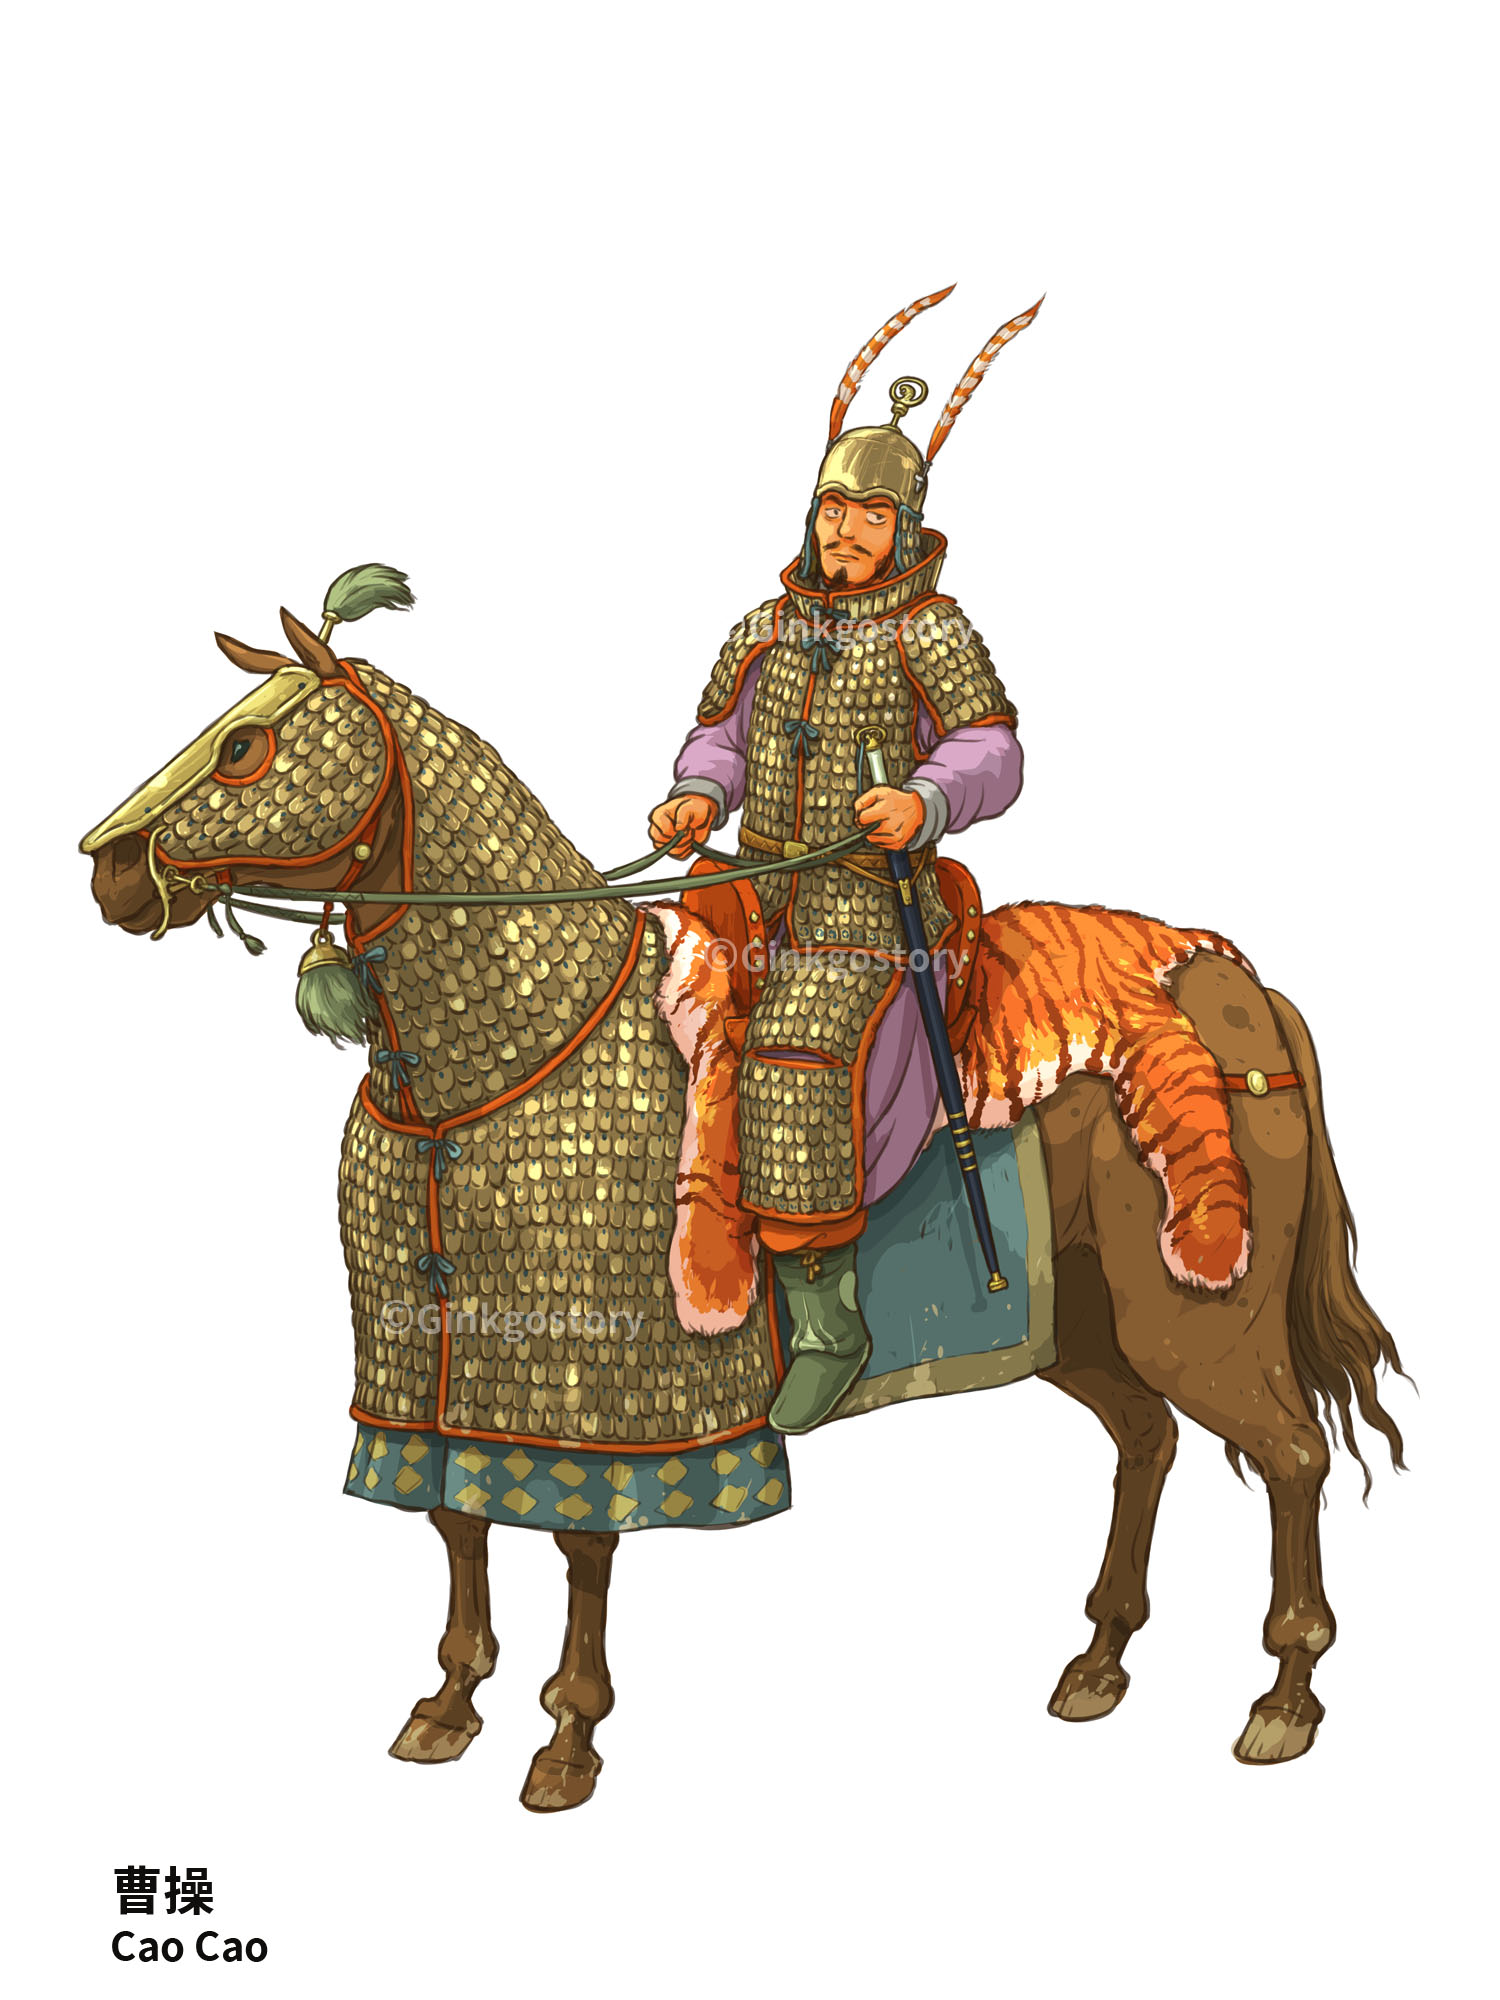 Three Kingdoms: Cao Cao